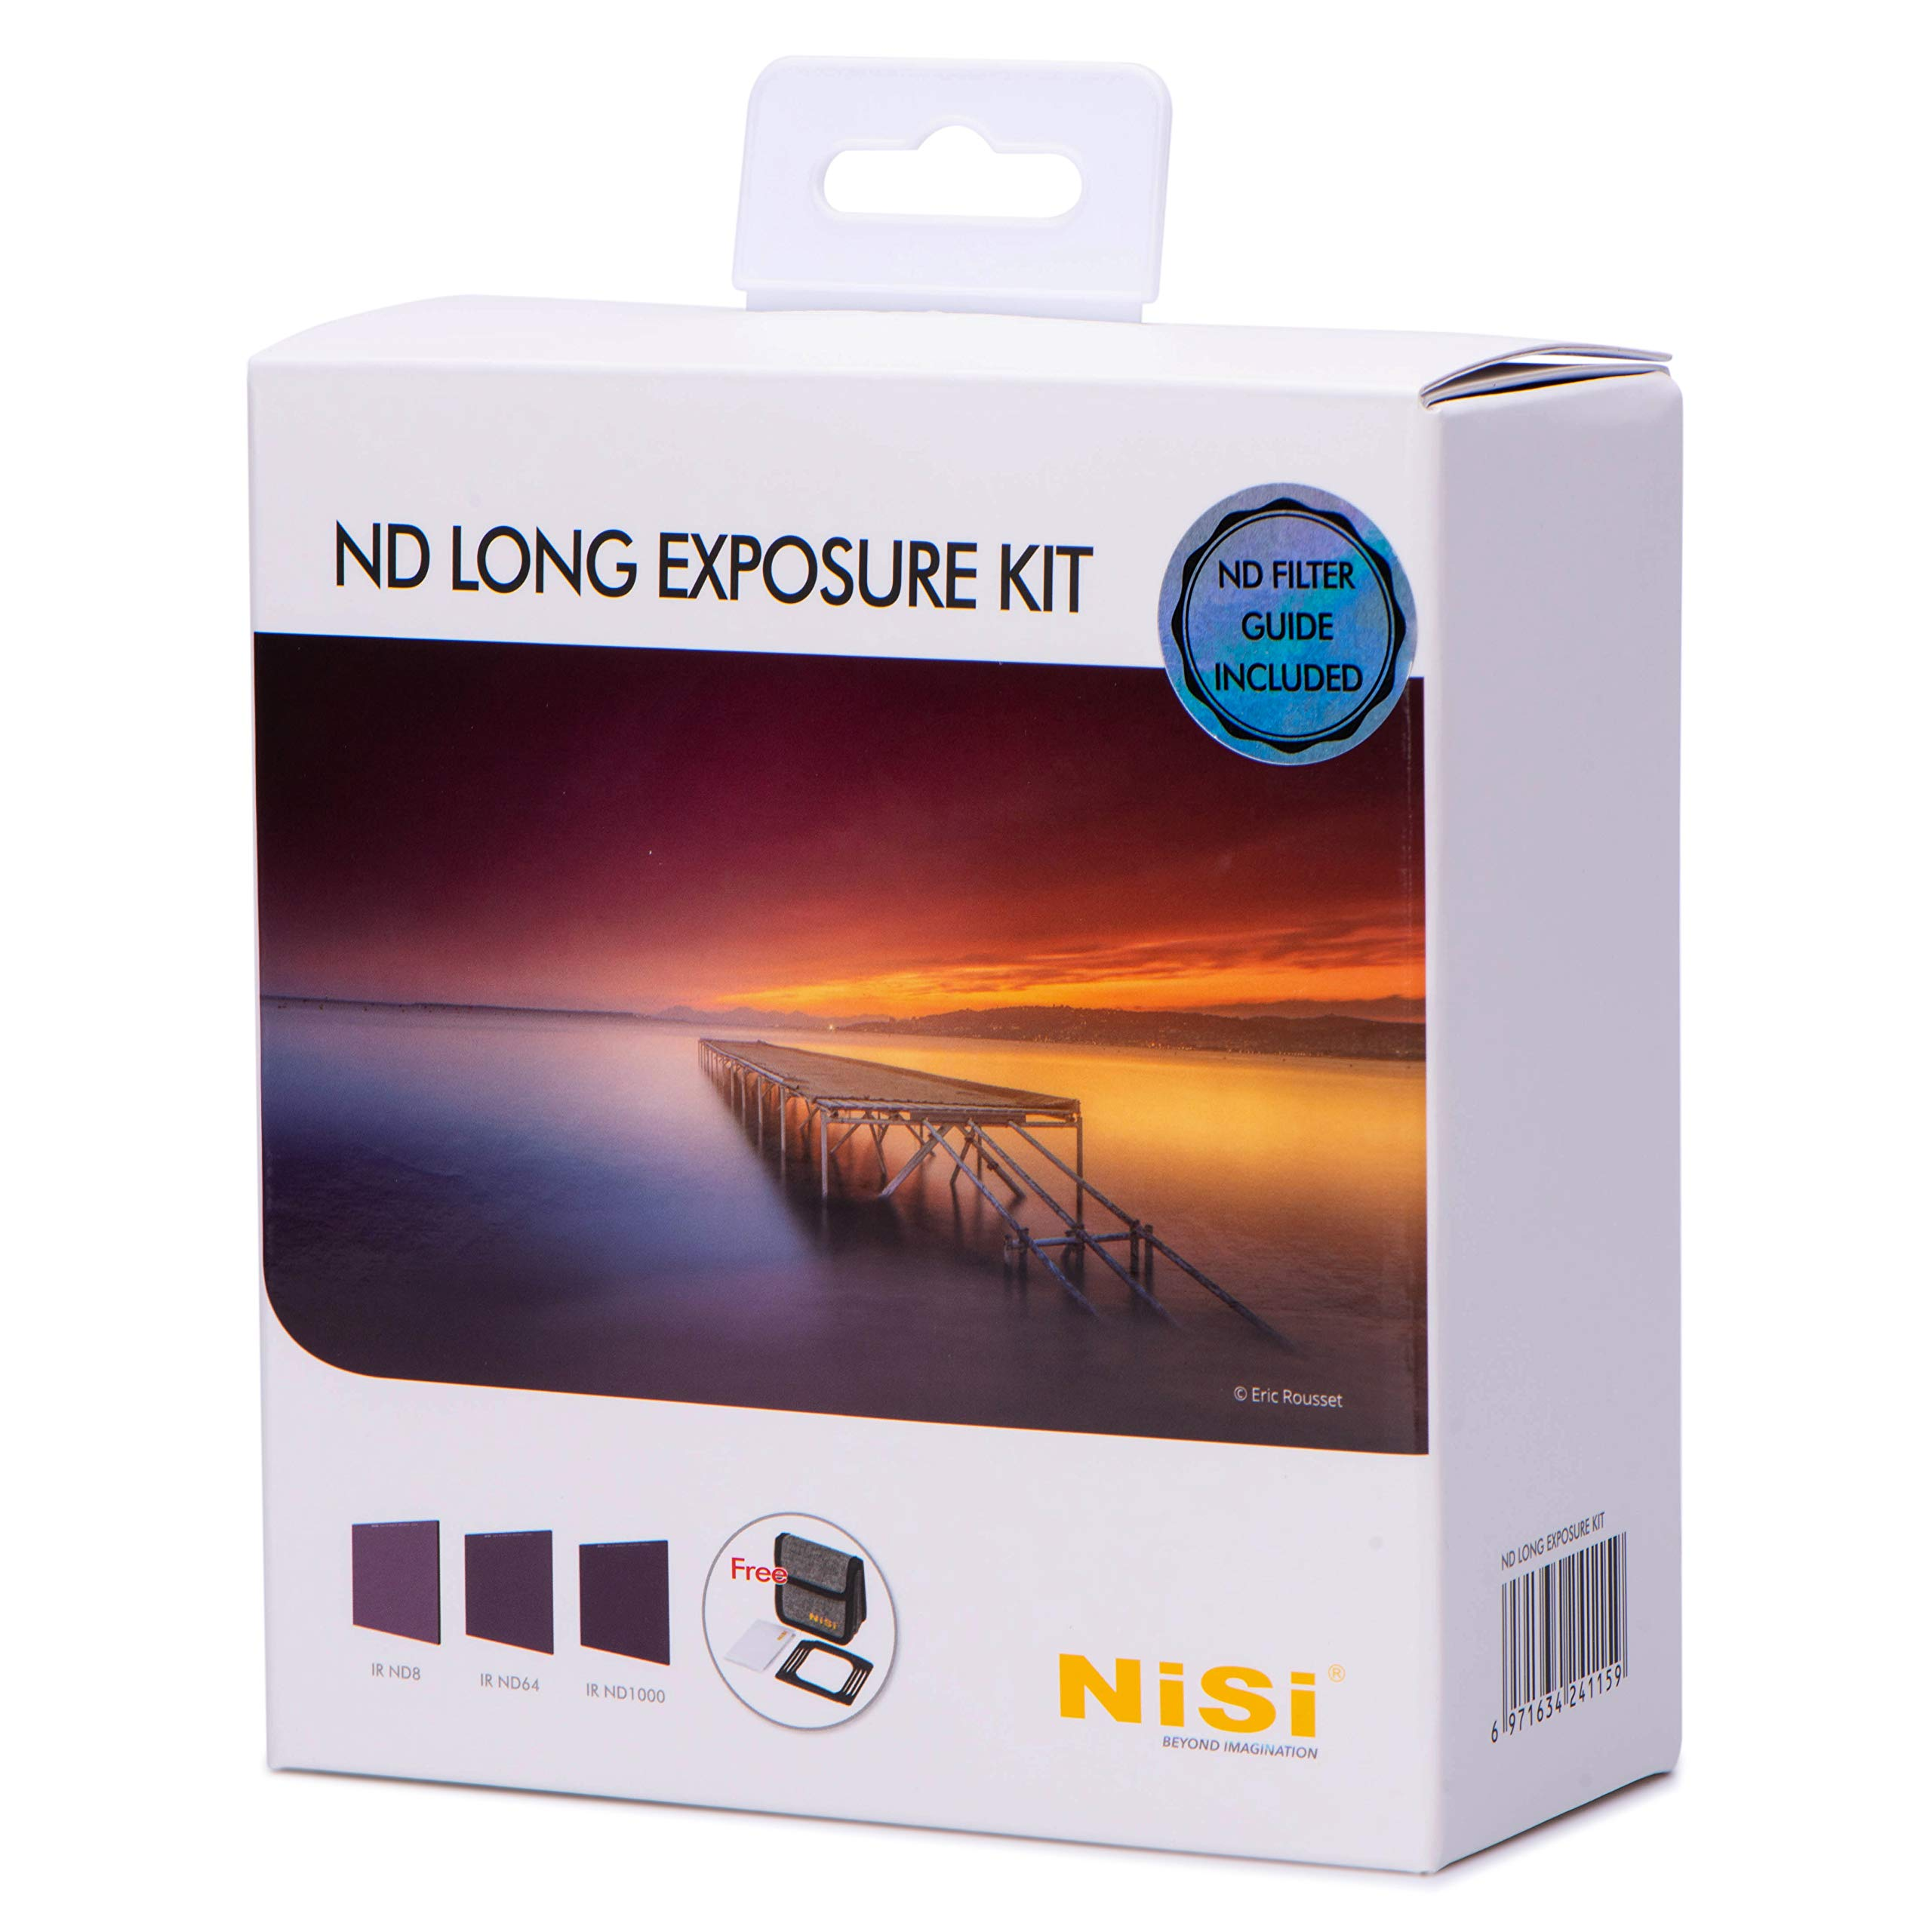 NiSi ND Long Exposure Kit 100x100mm, Featuring IR ND8(3-stop), IR ND64(6-stop) and IR ND1000(10-stop) by NiSi